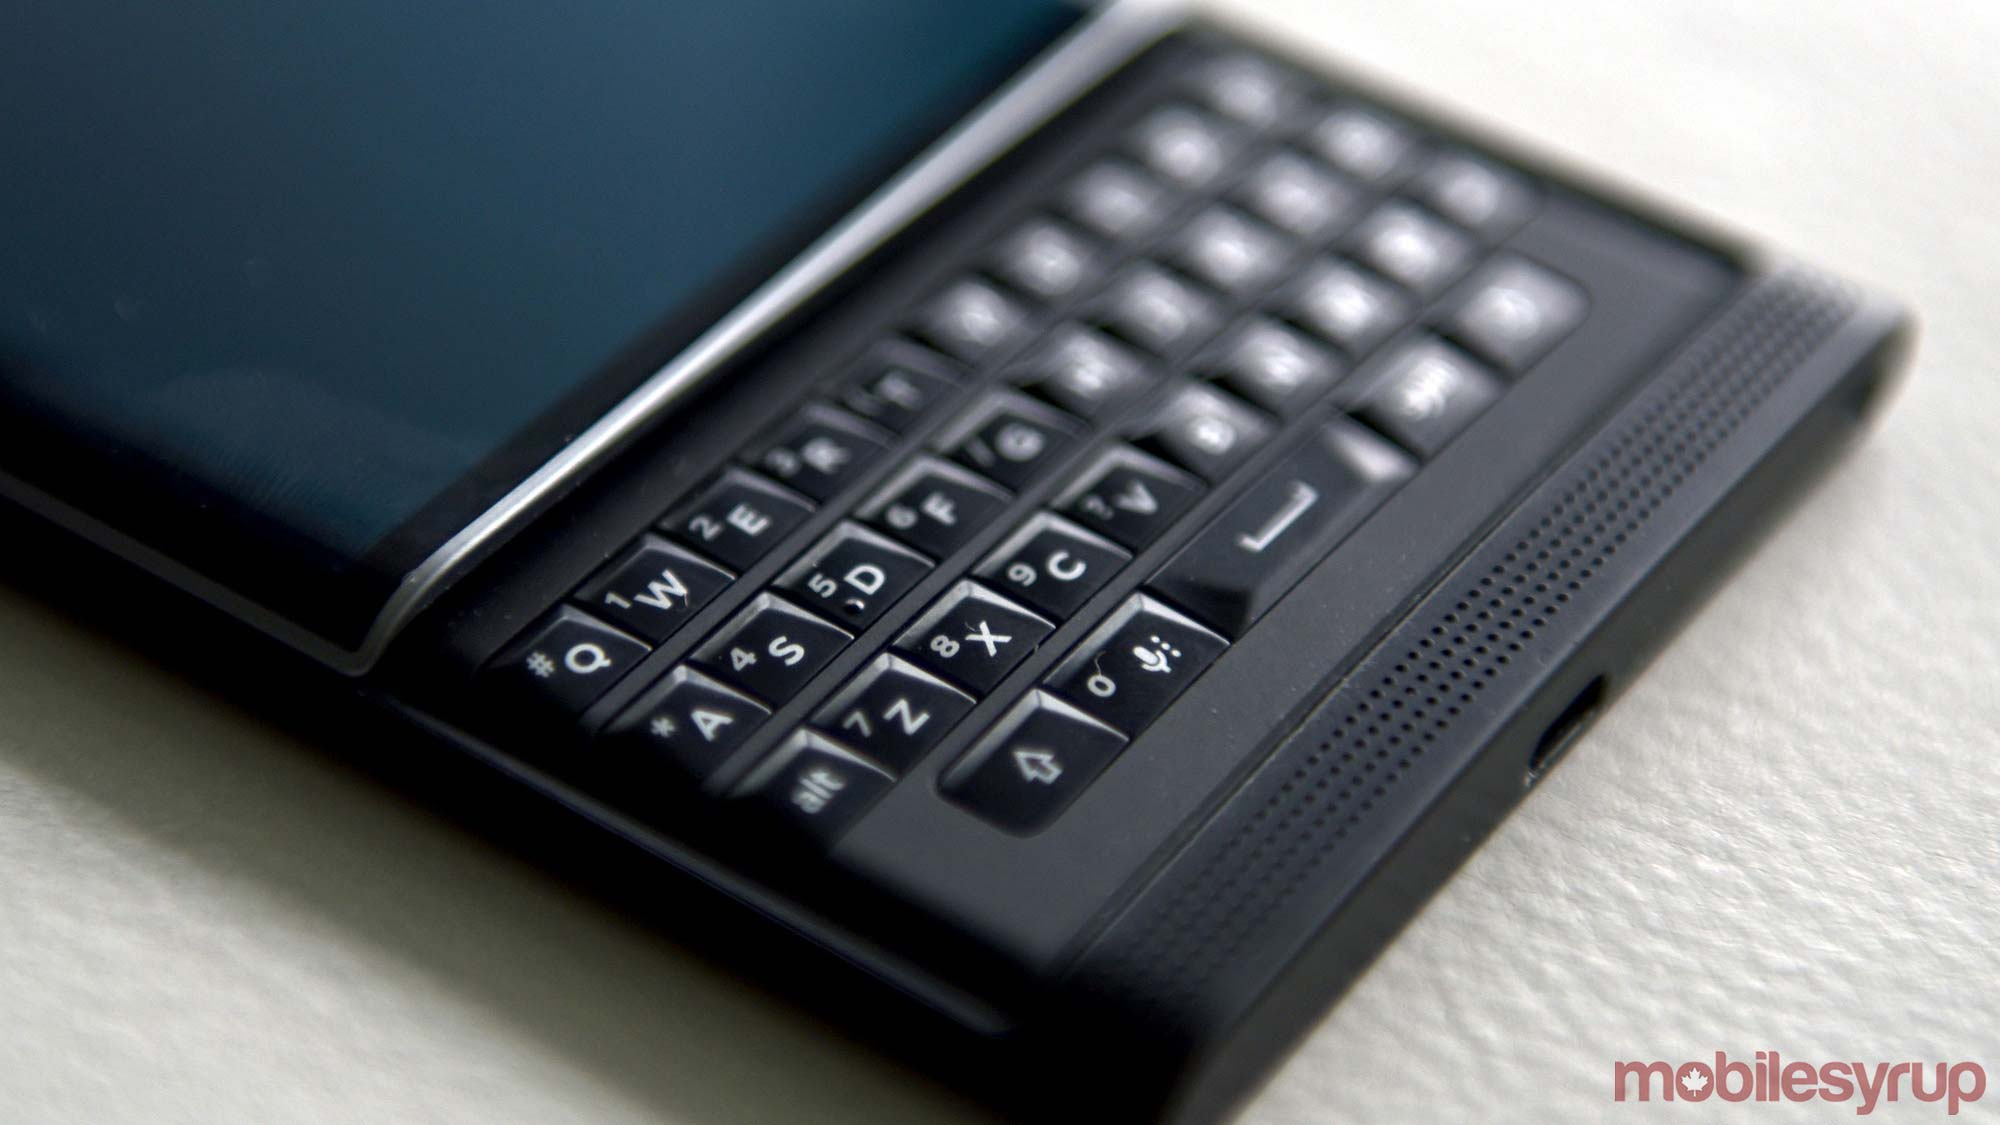 priv keyboard - blackberry priv sale